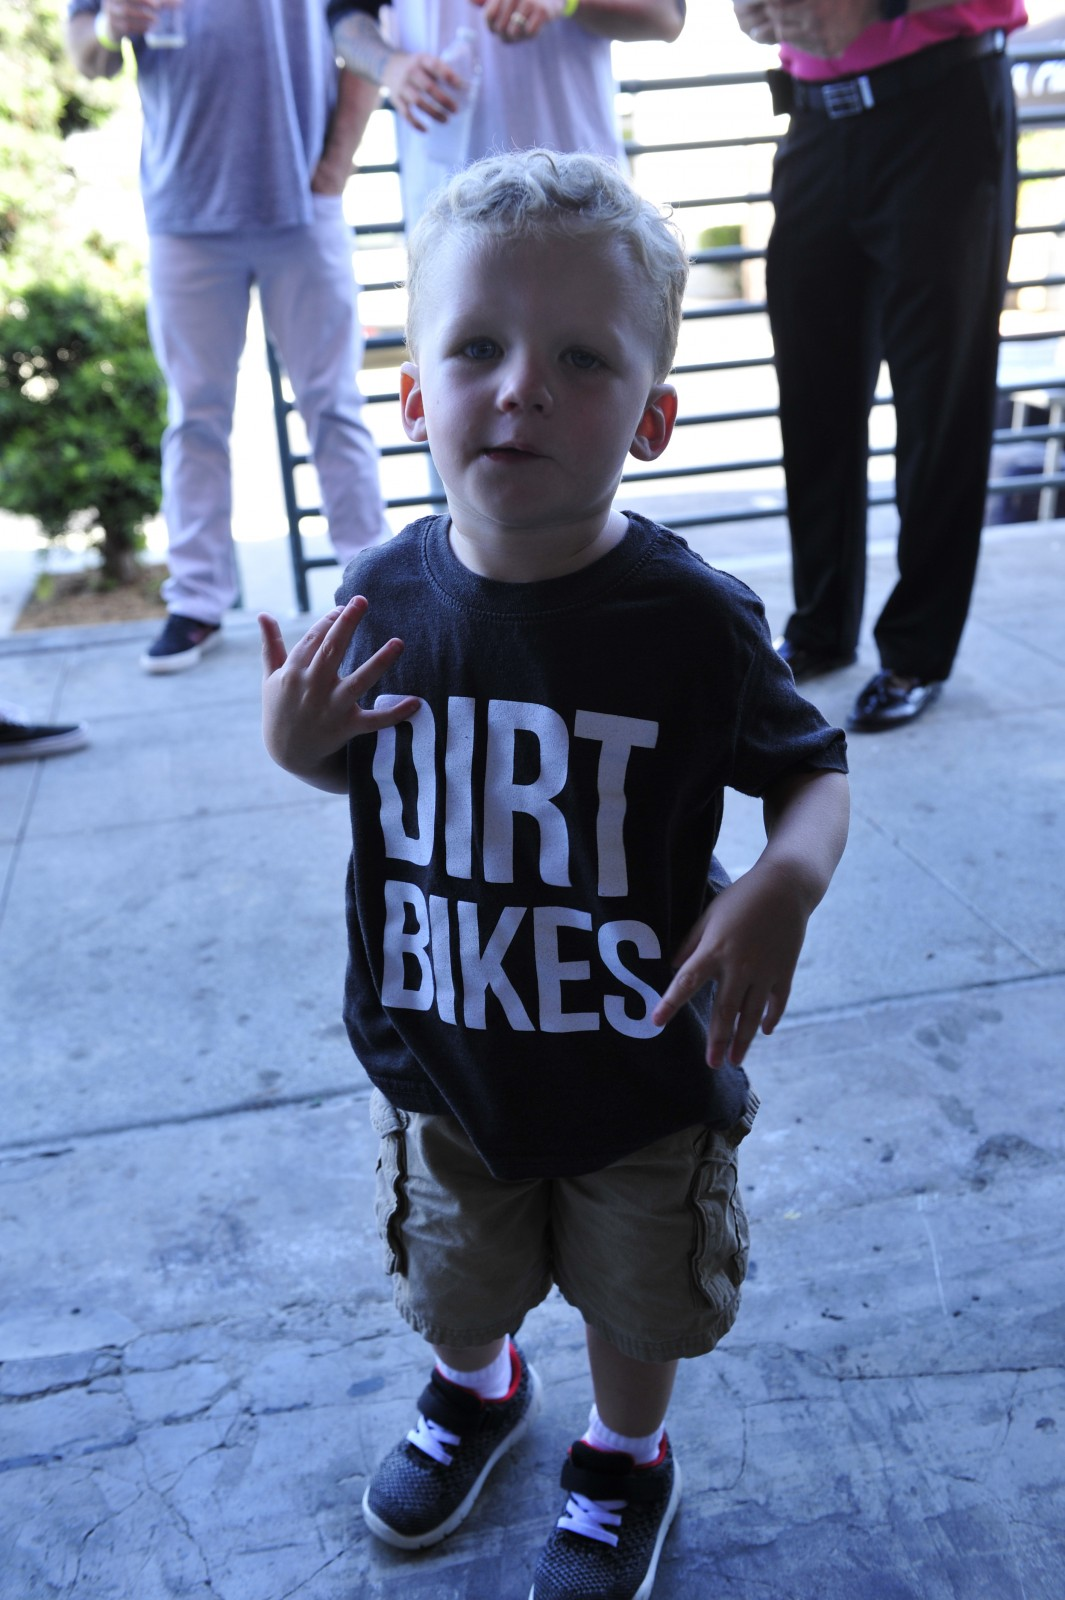 Dirt_Bike_kid_COX6641